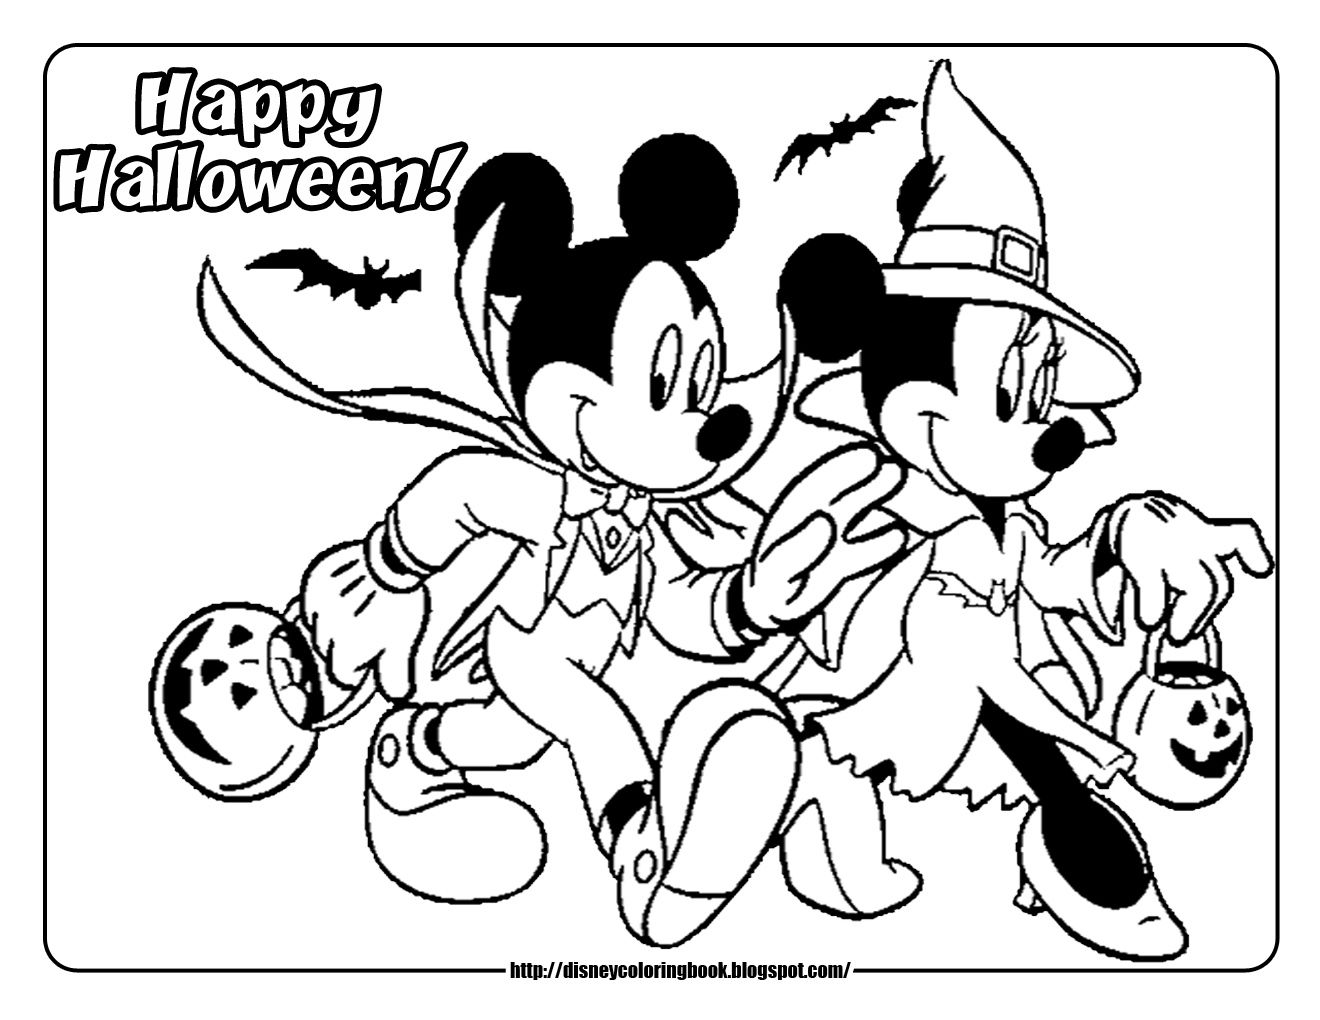 Printable Halloween Coloring Pages Mickey Mouse & Minnie Mouse ...